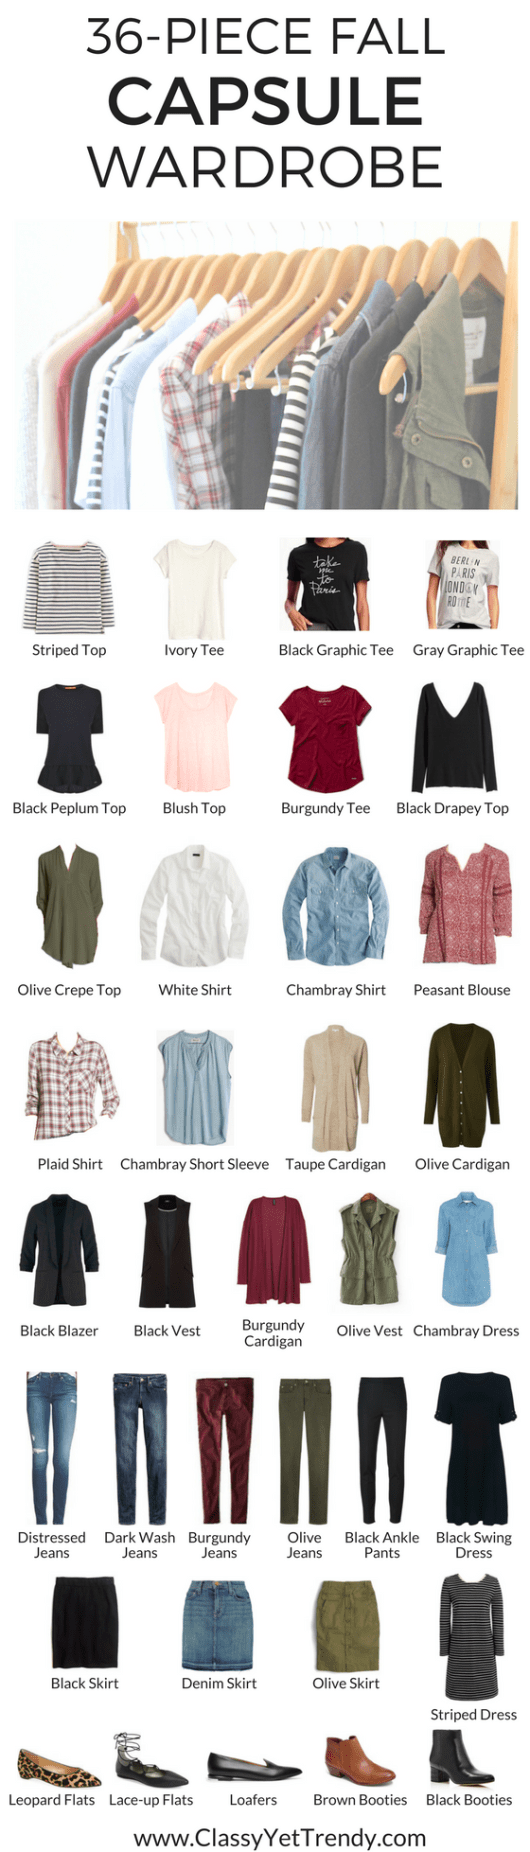 36 Piece Fall 2016 Capsule Wardrobe